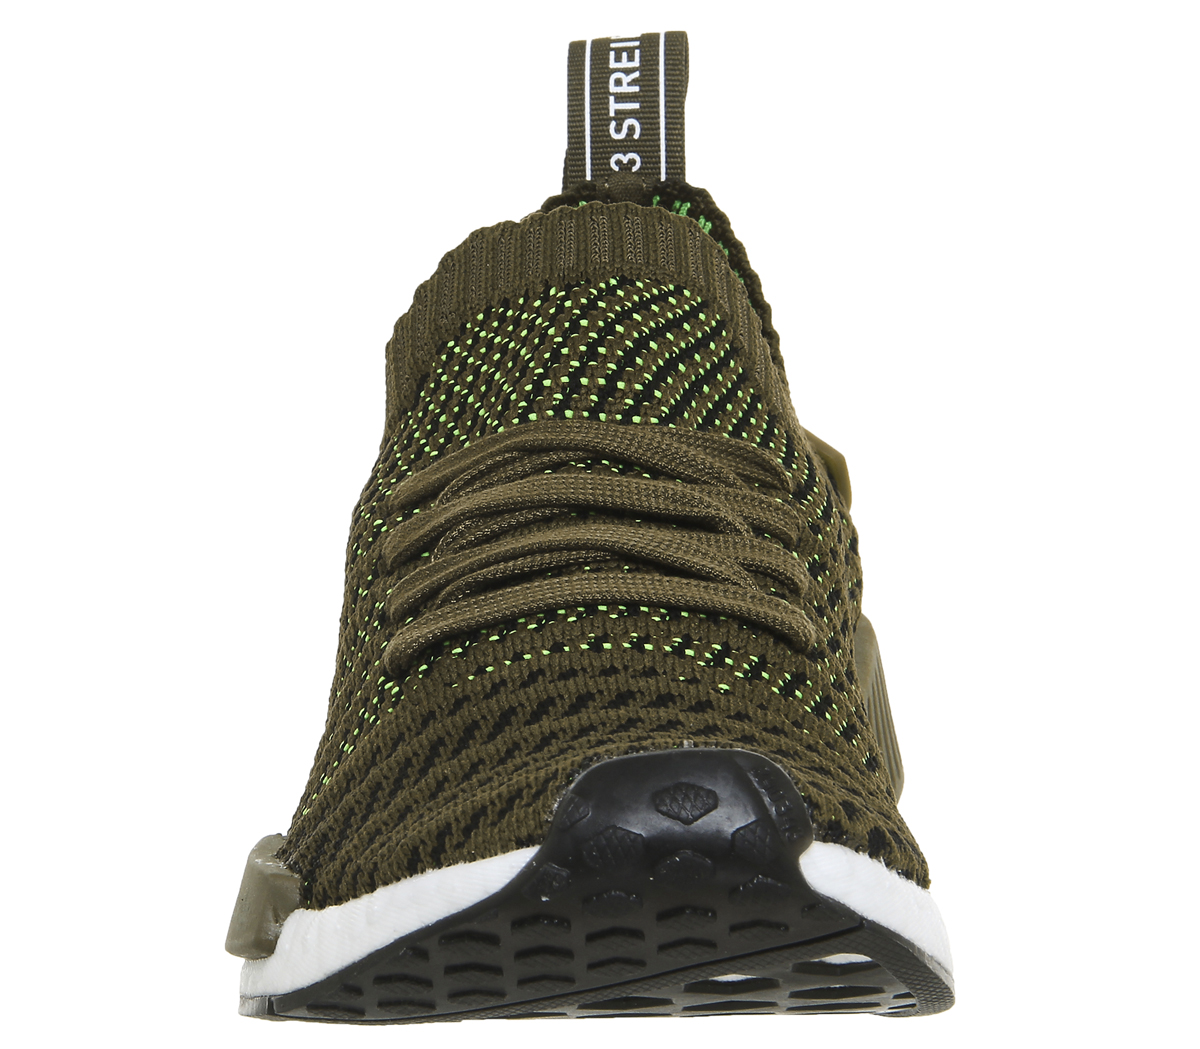 Herren Prime Adidas Nmd R1 Prime Herren Knit Trainers Trace Olive Trainers Schuhes 0dc36c